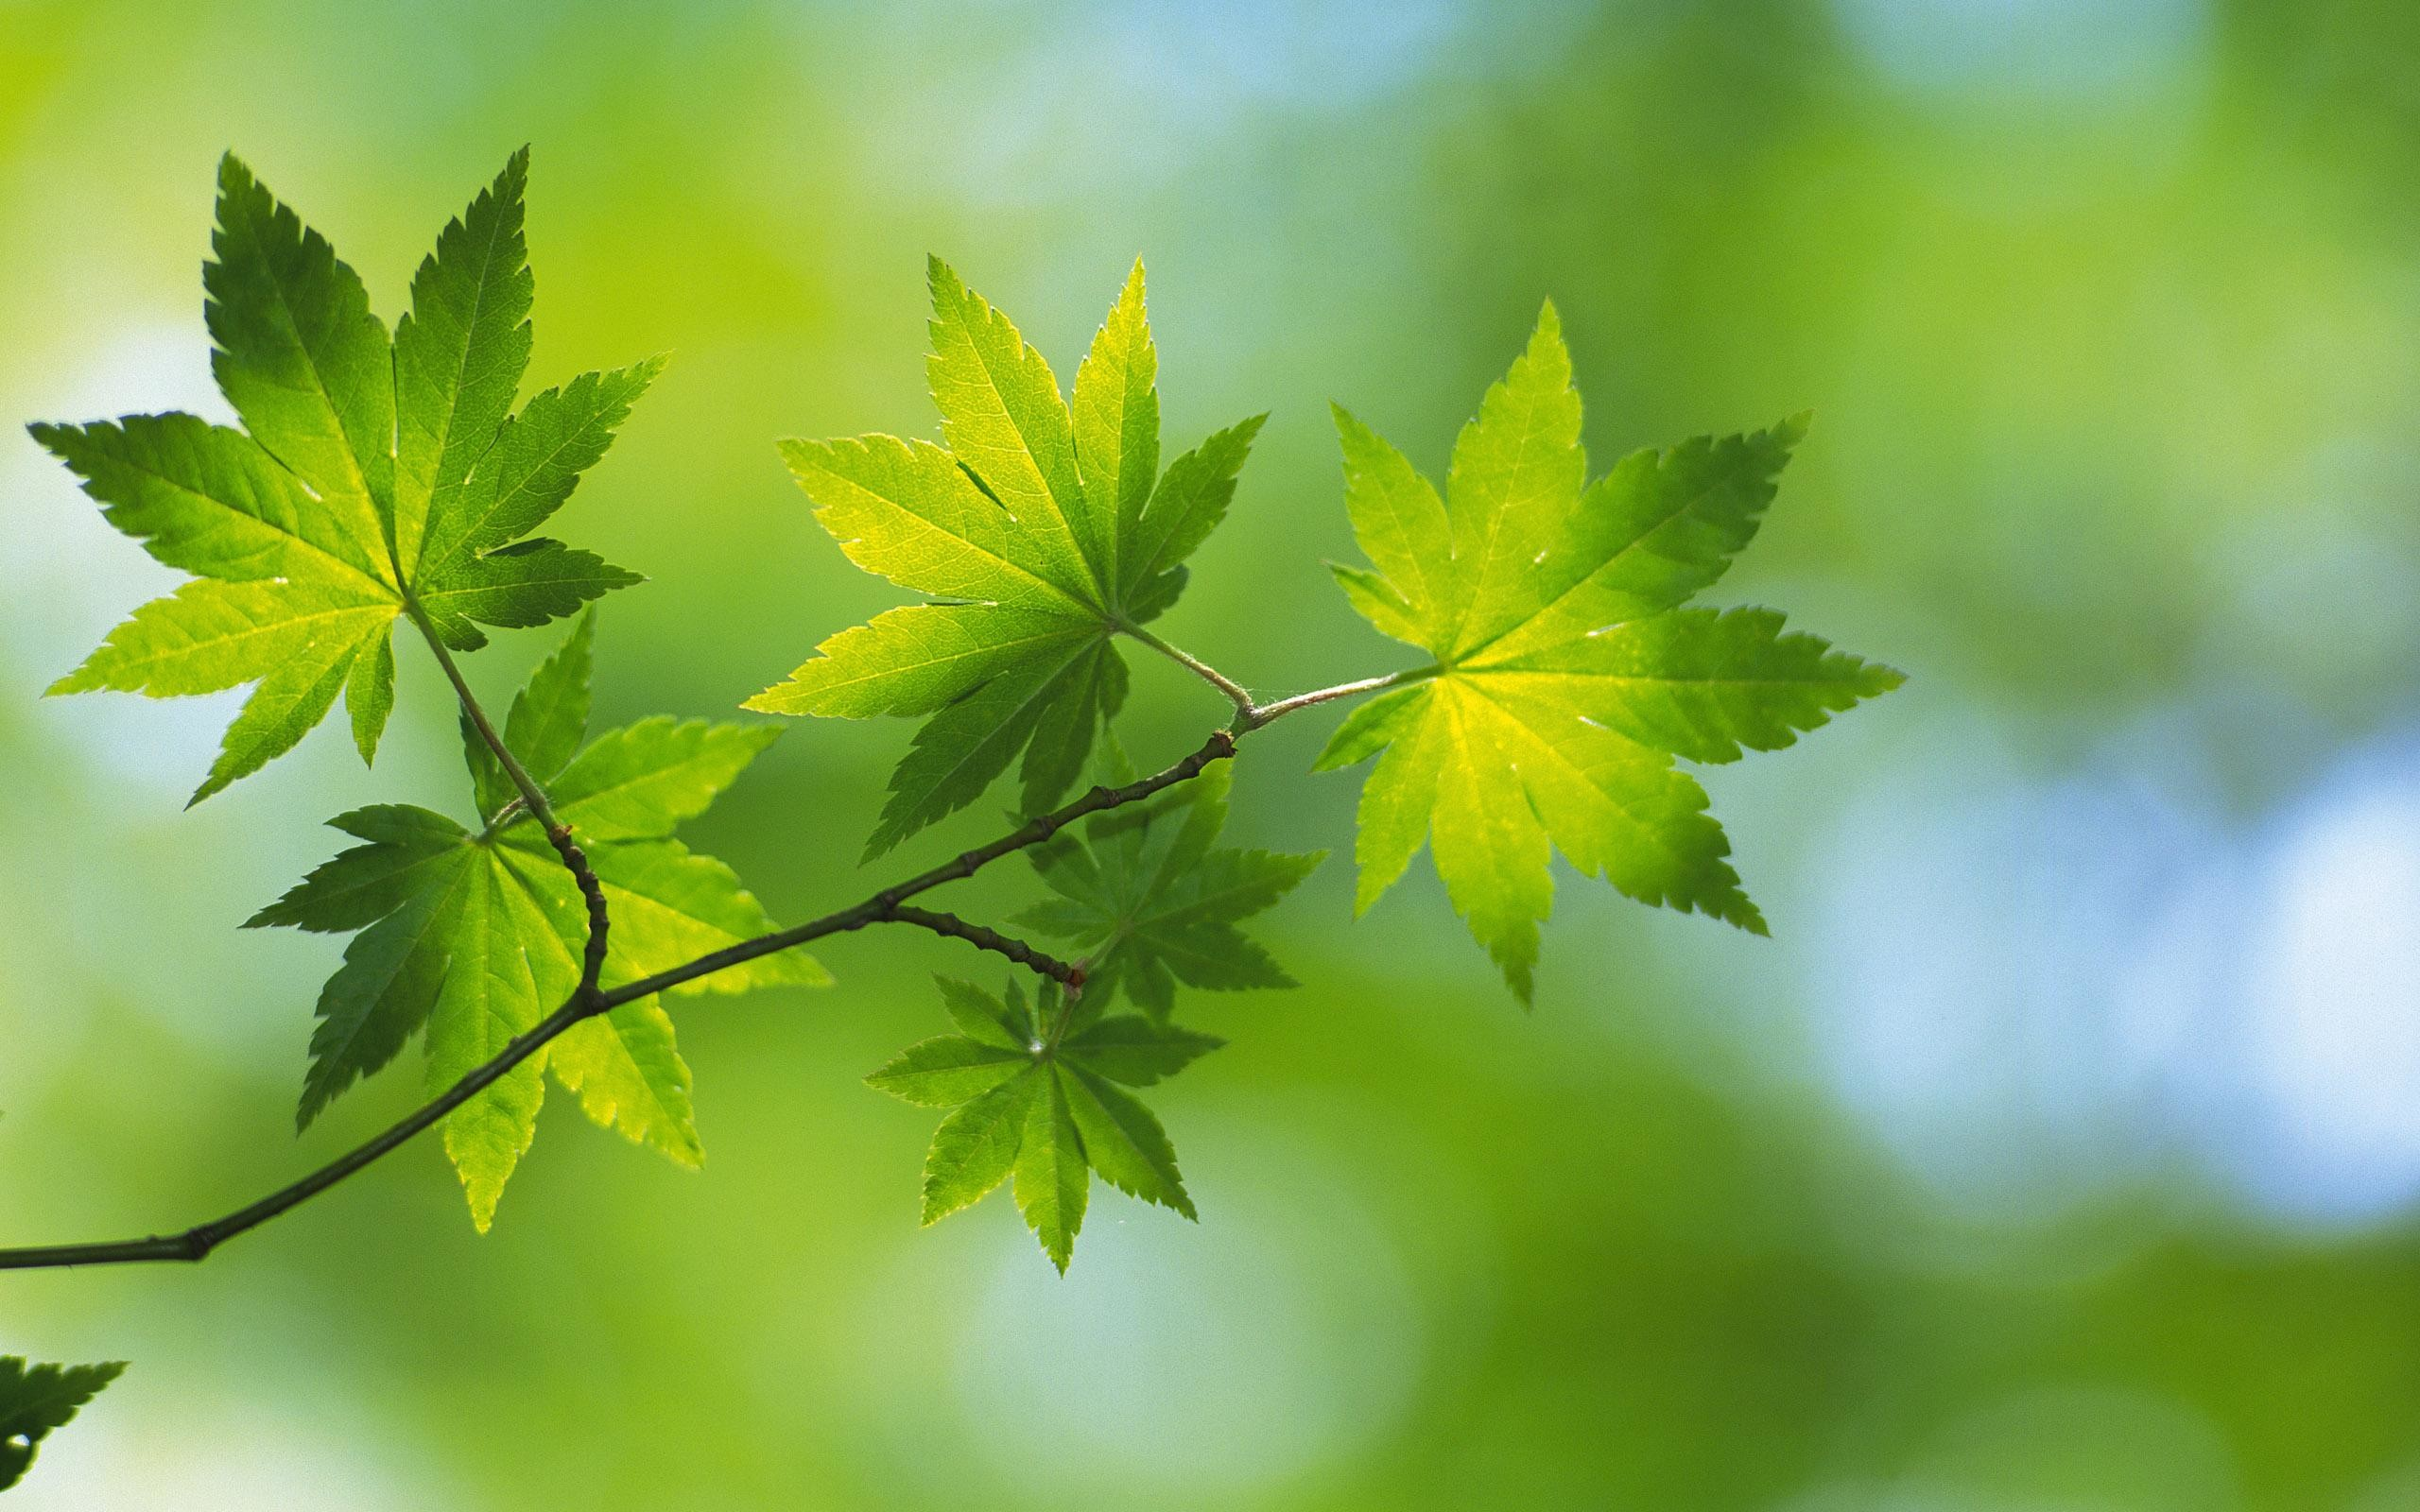 Green Nature HD Wallpapers.